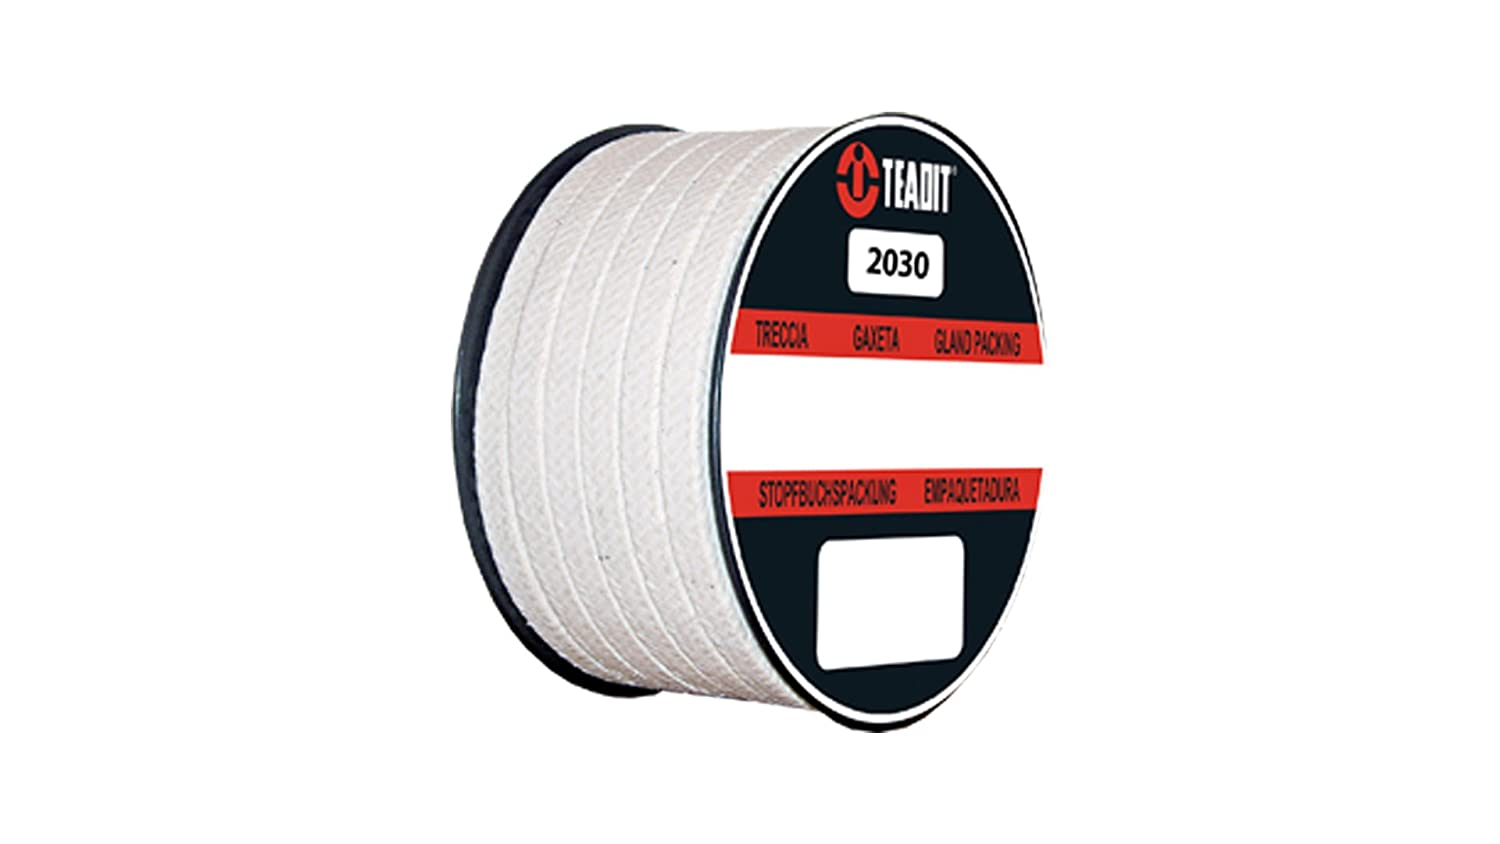 2030.562x2 Teadit Style 2030 Meta-Aramid with PTFE and Mineral Oil Packing STCC Sterling Seal and Supply 9//16 CS x 2 lb Spool 9//16 CS x 2 lb Spool